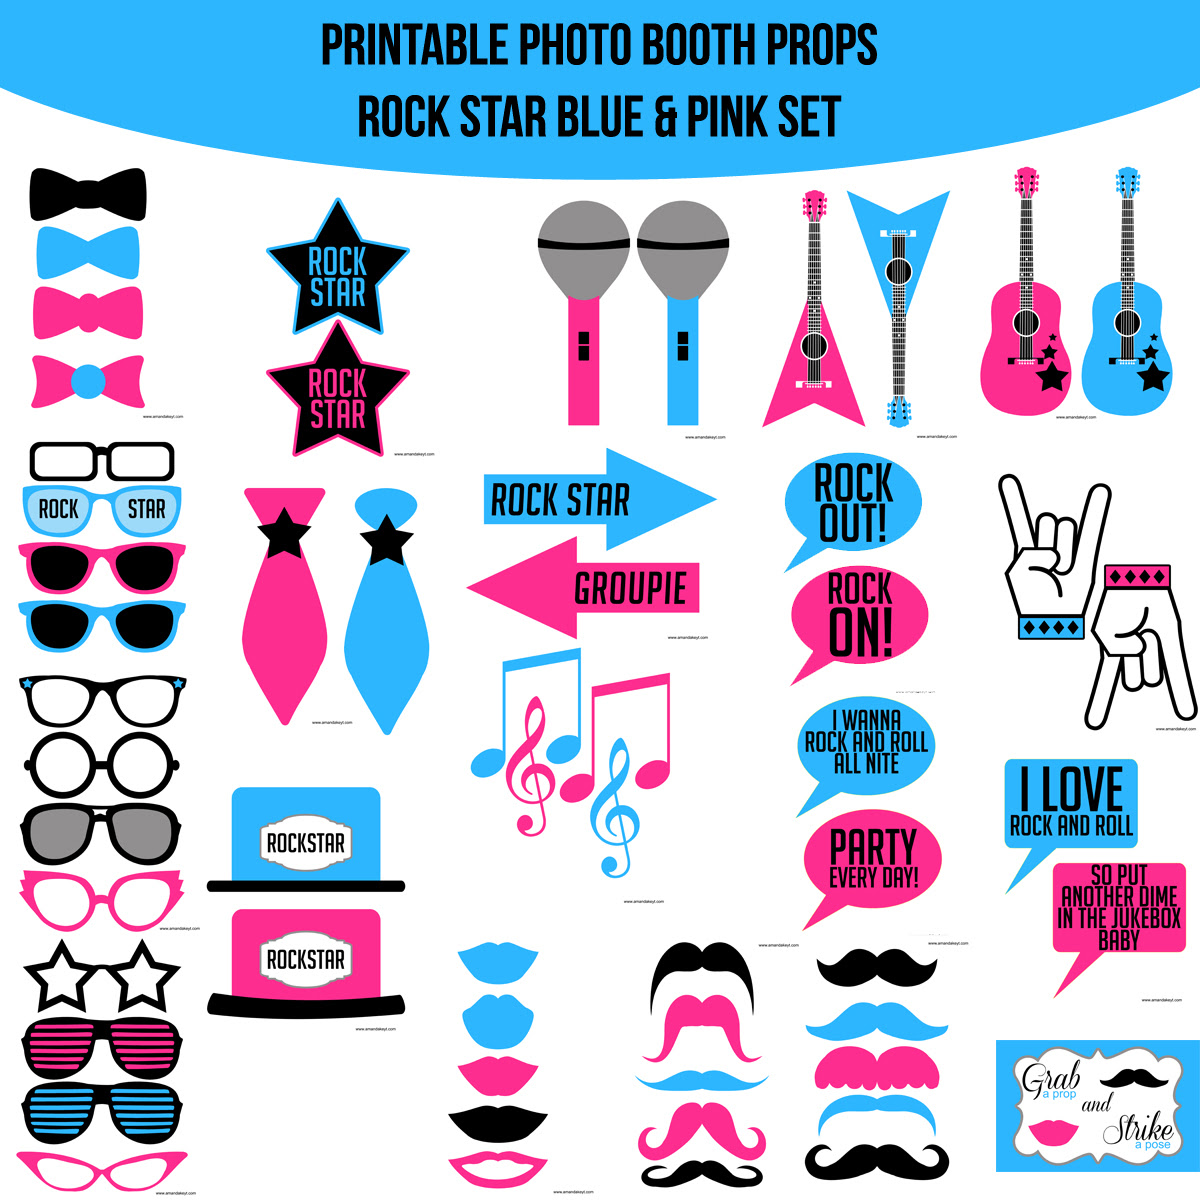 Instant Download Rock Star Blue Pink Printable Photo Booth Prop Set